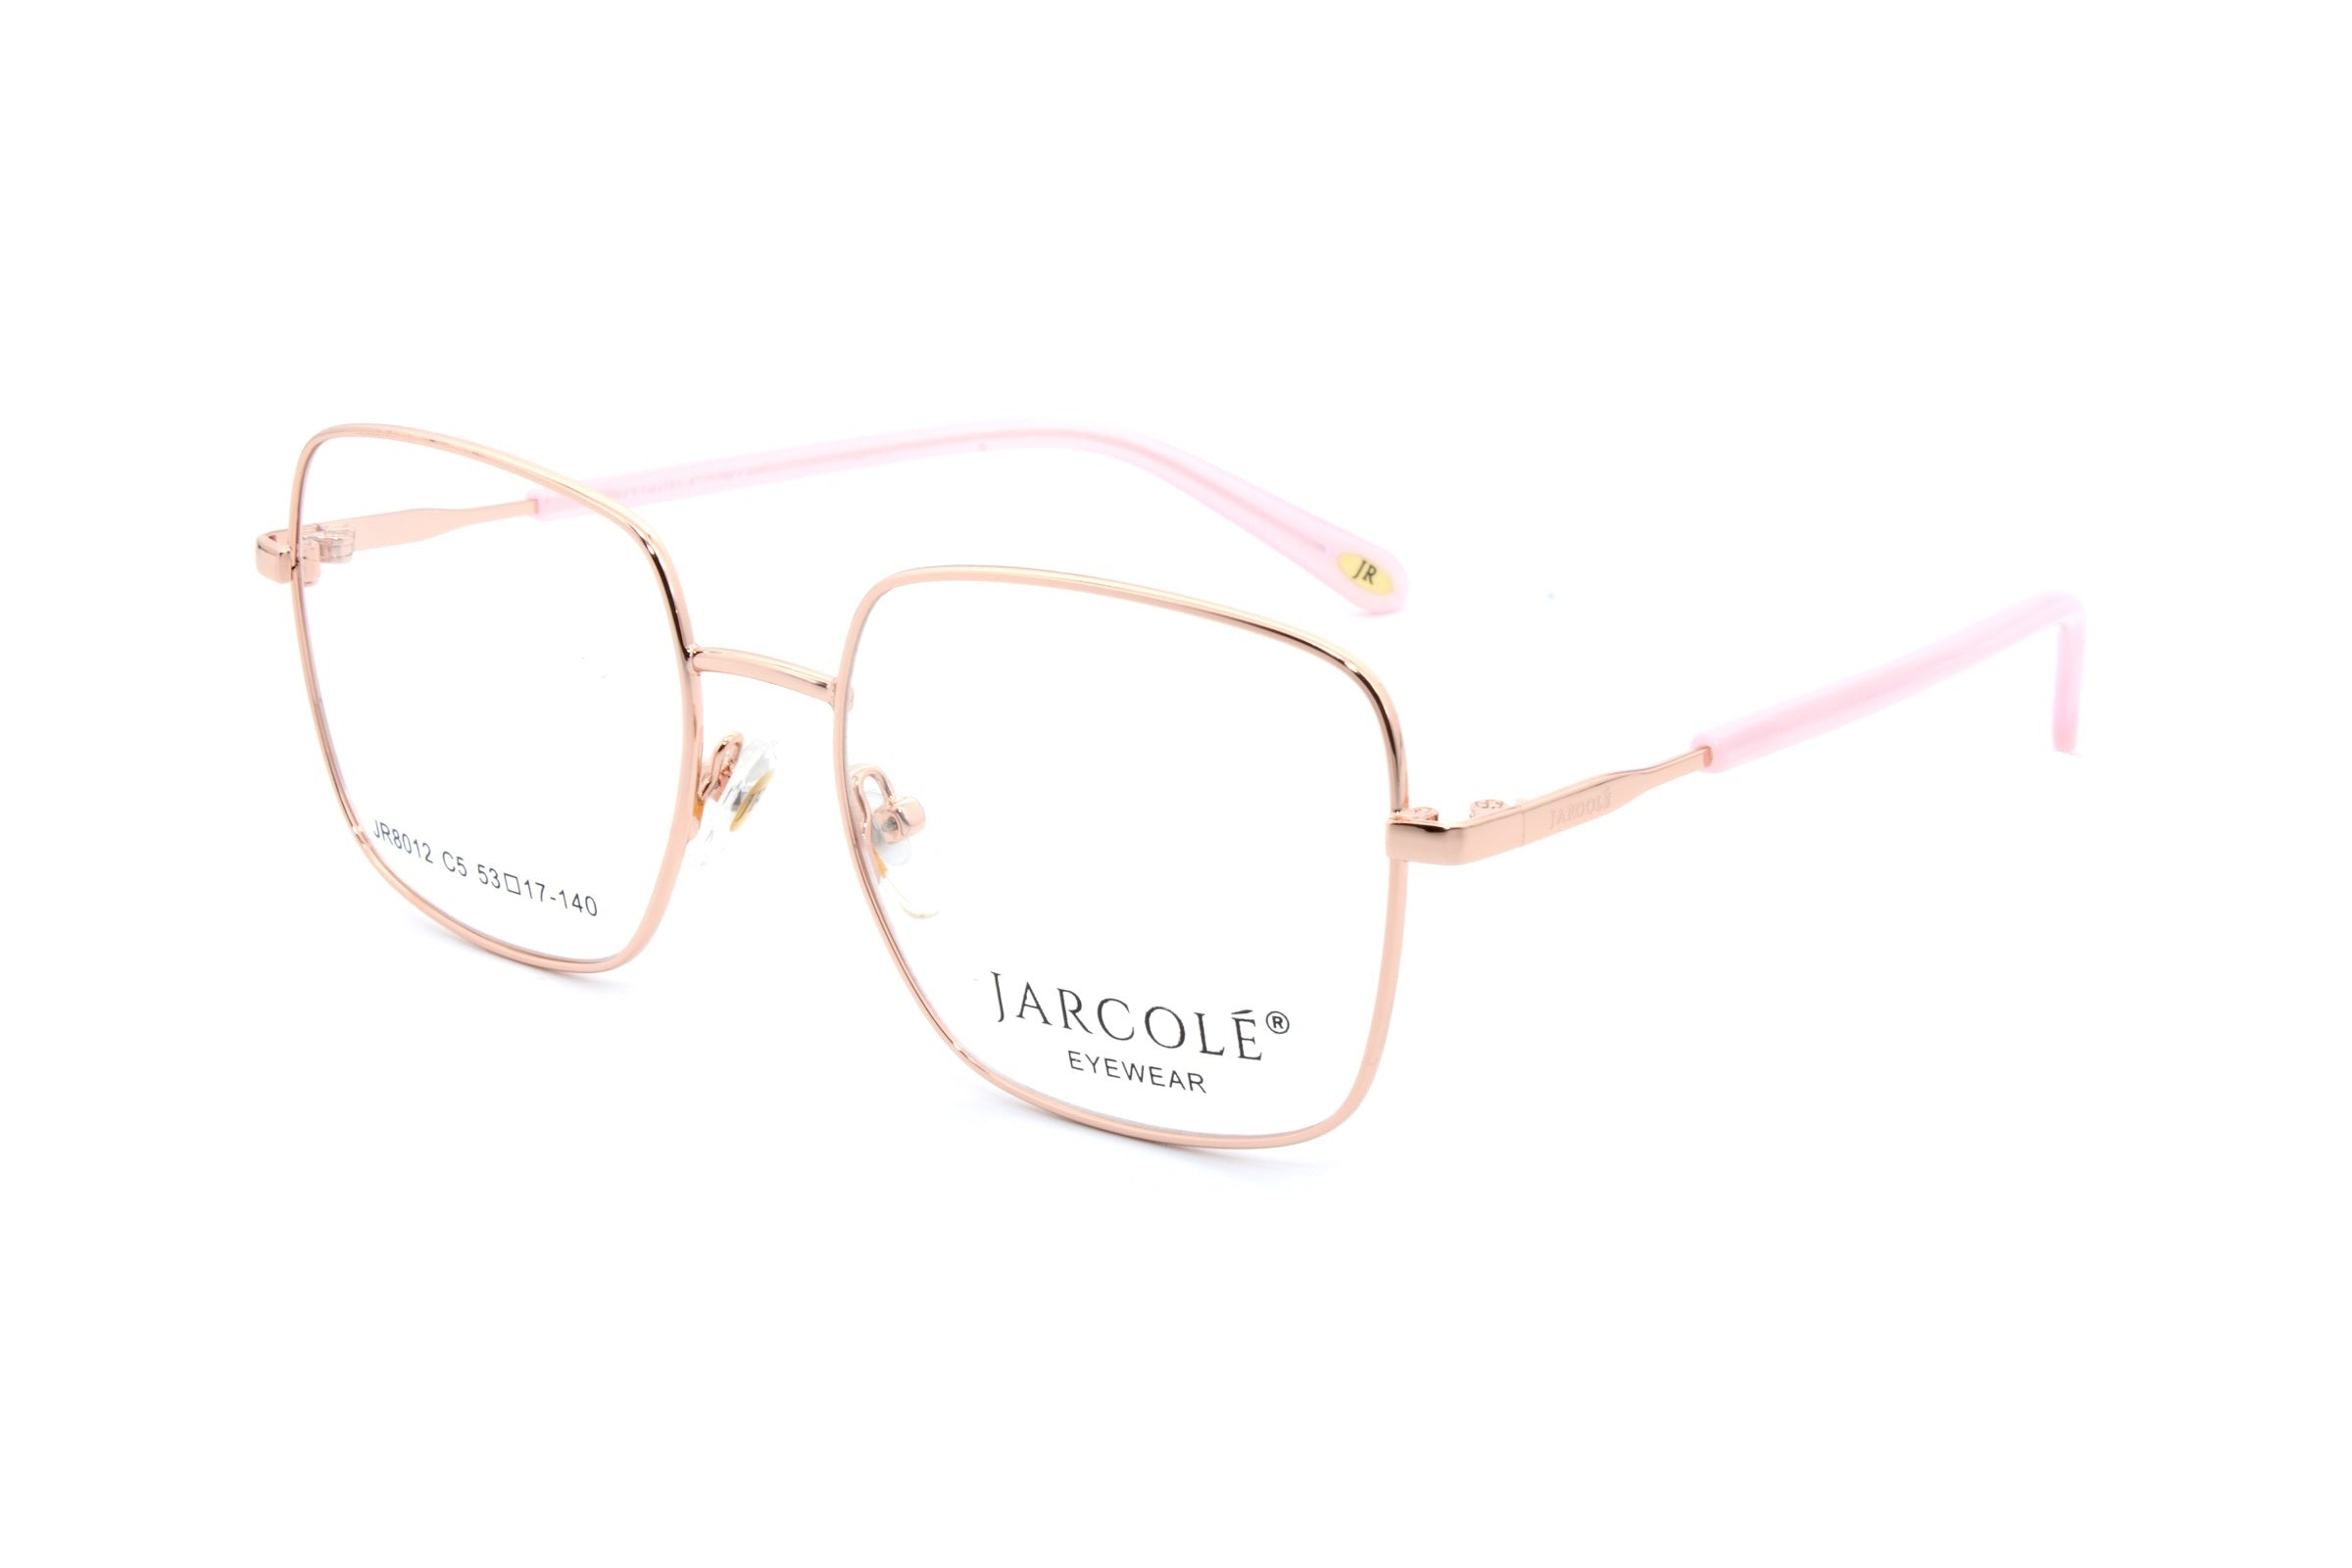 Jarcole eyewear 8012, C5 - Optics Trading